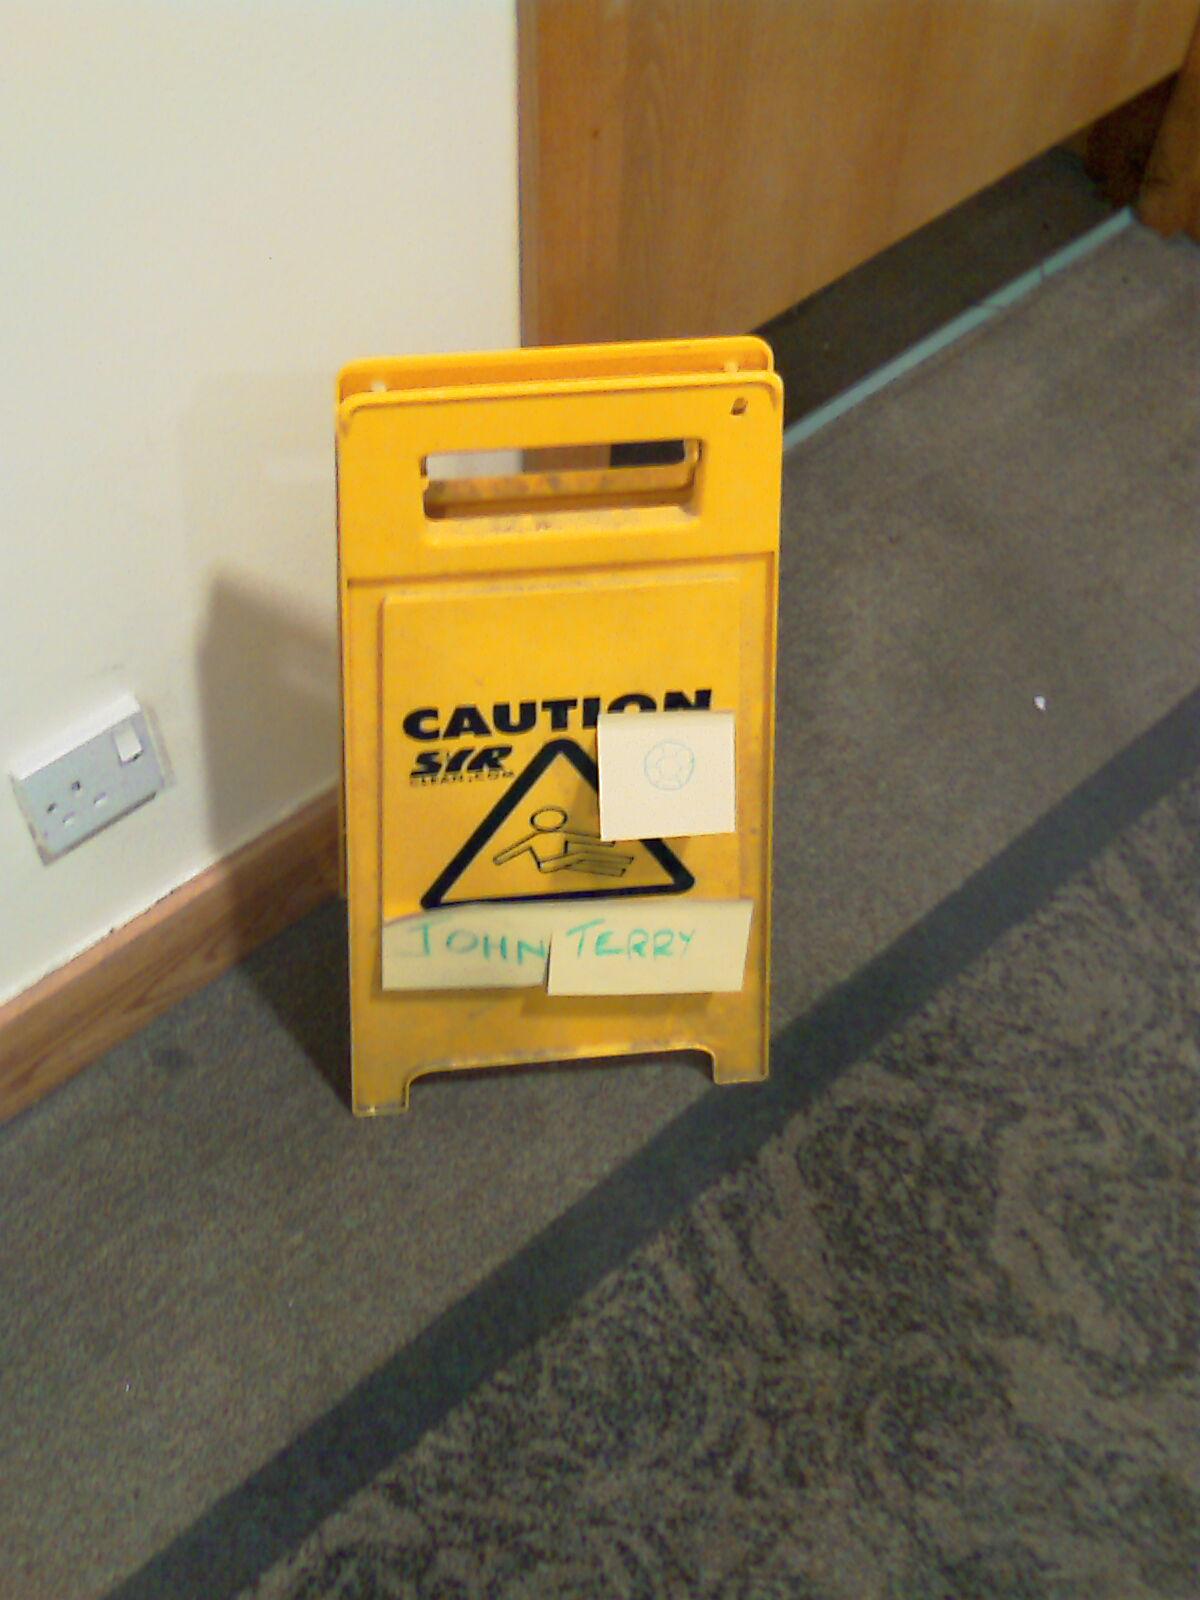 Caution - John Terry